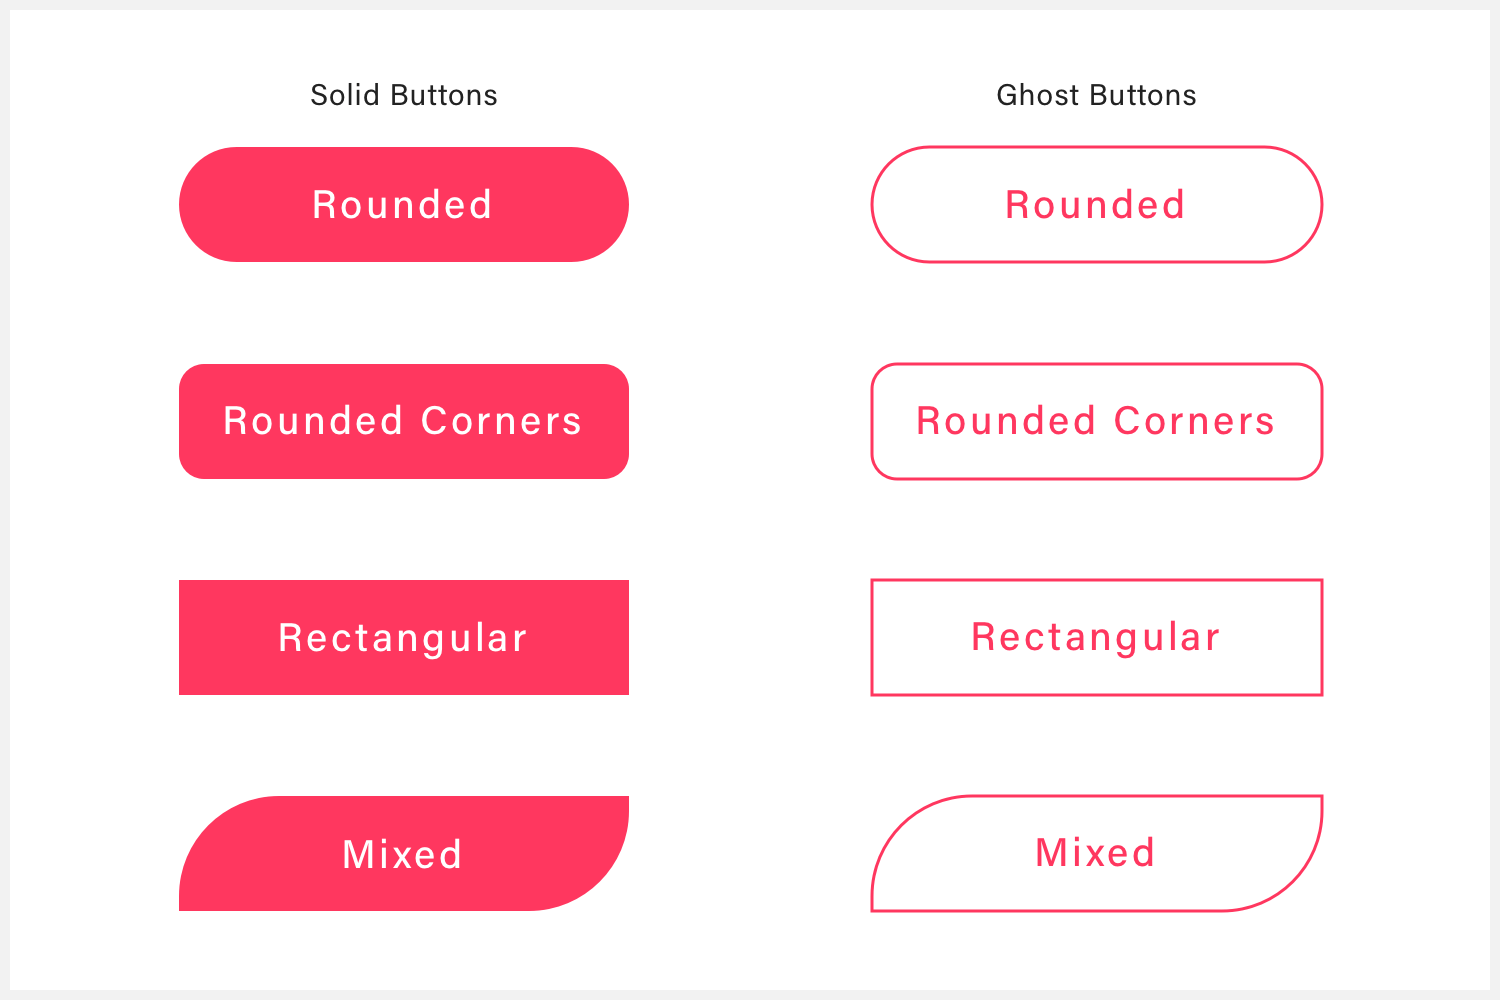 Several solid and ghost buttons that illustrate different button colors.